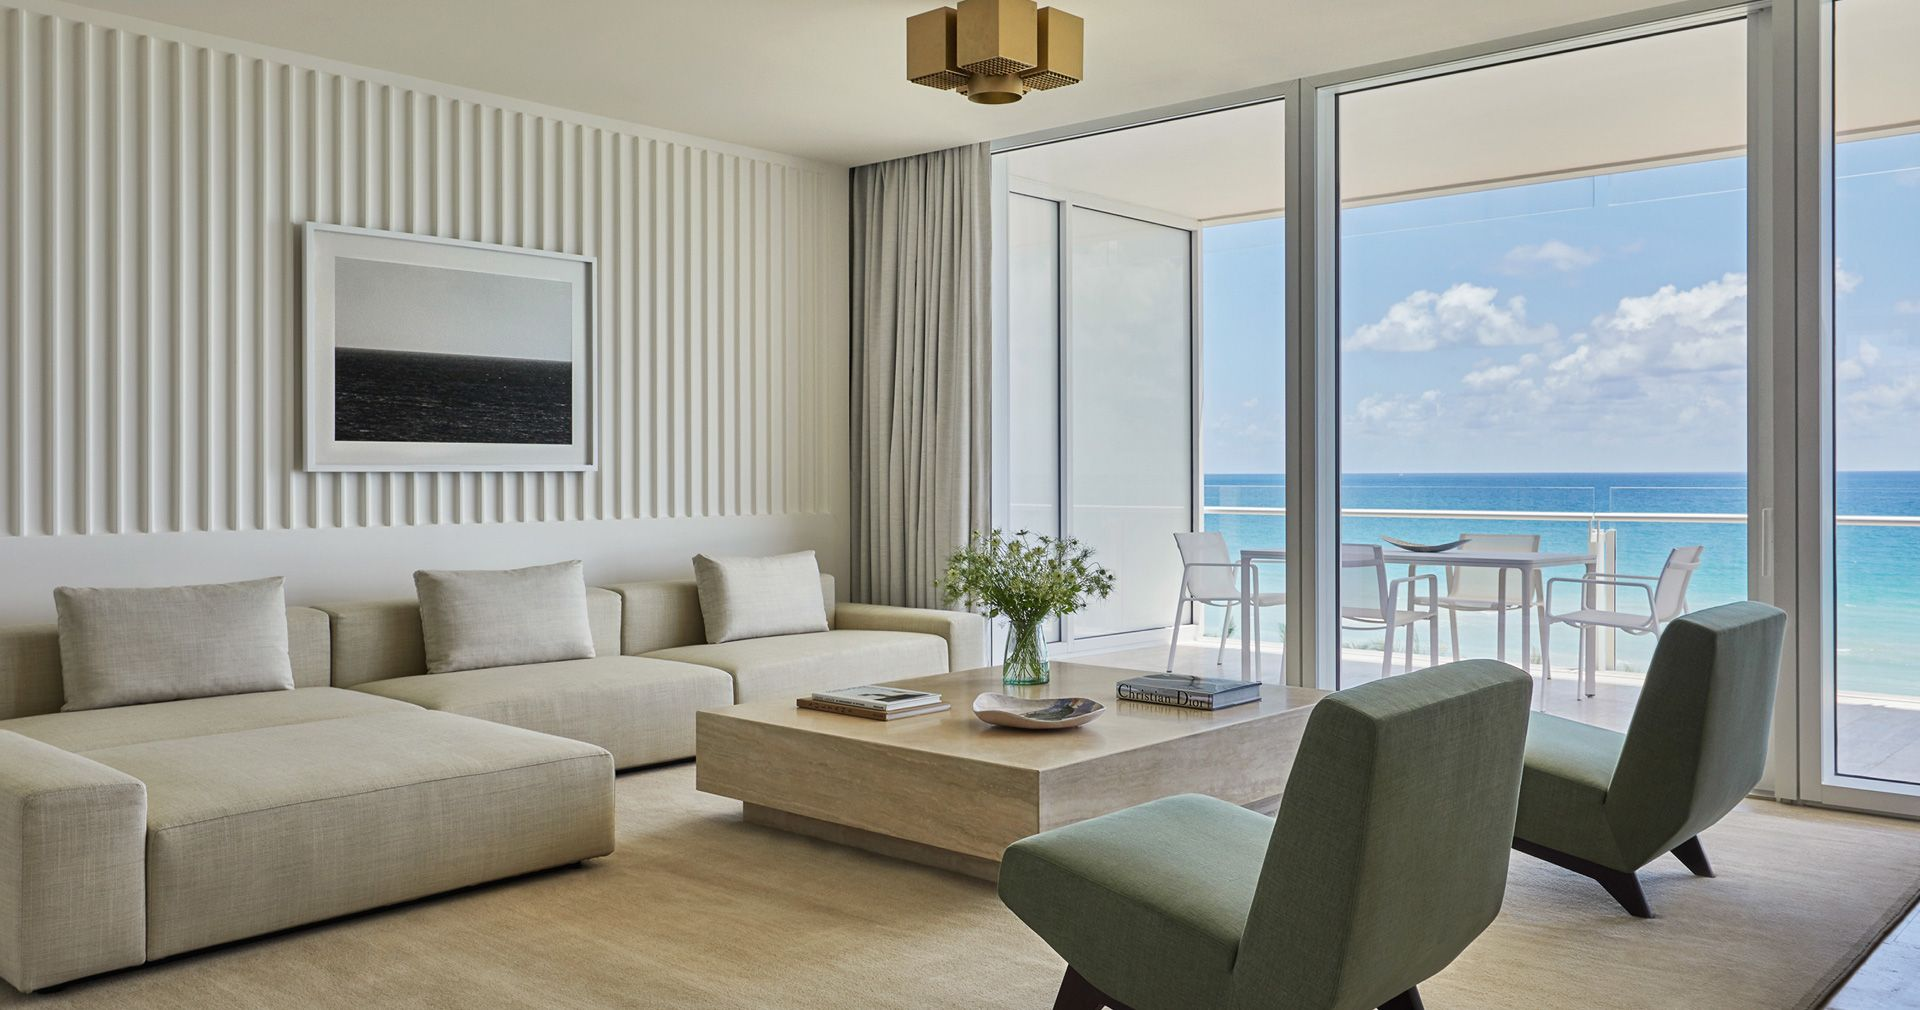 The Surf Club is one of Miami Beach's most soughtafter